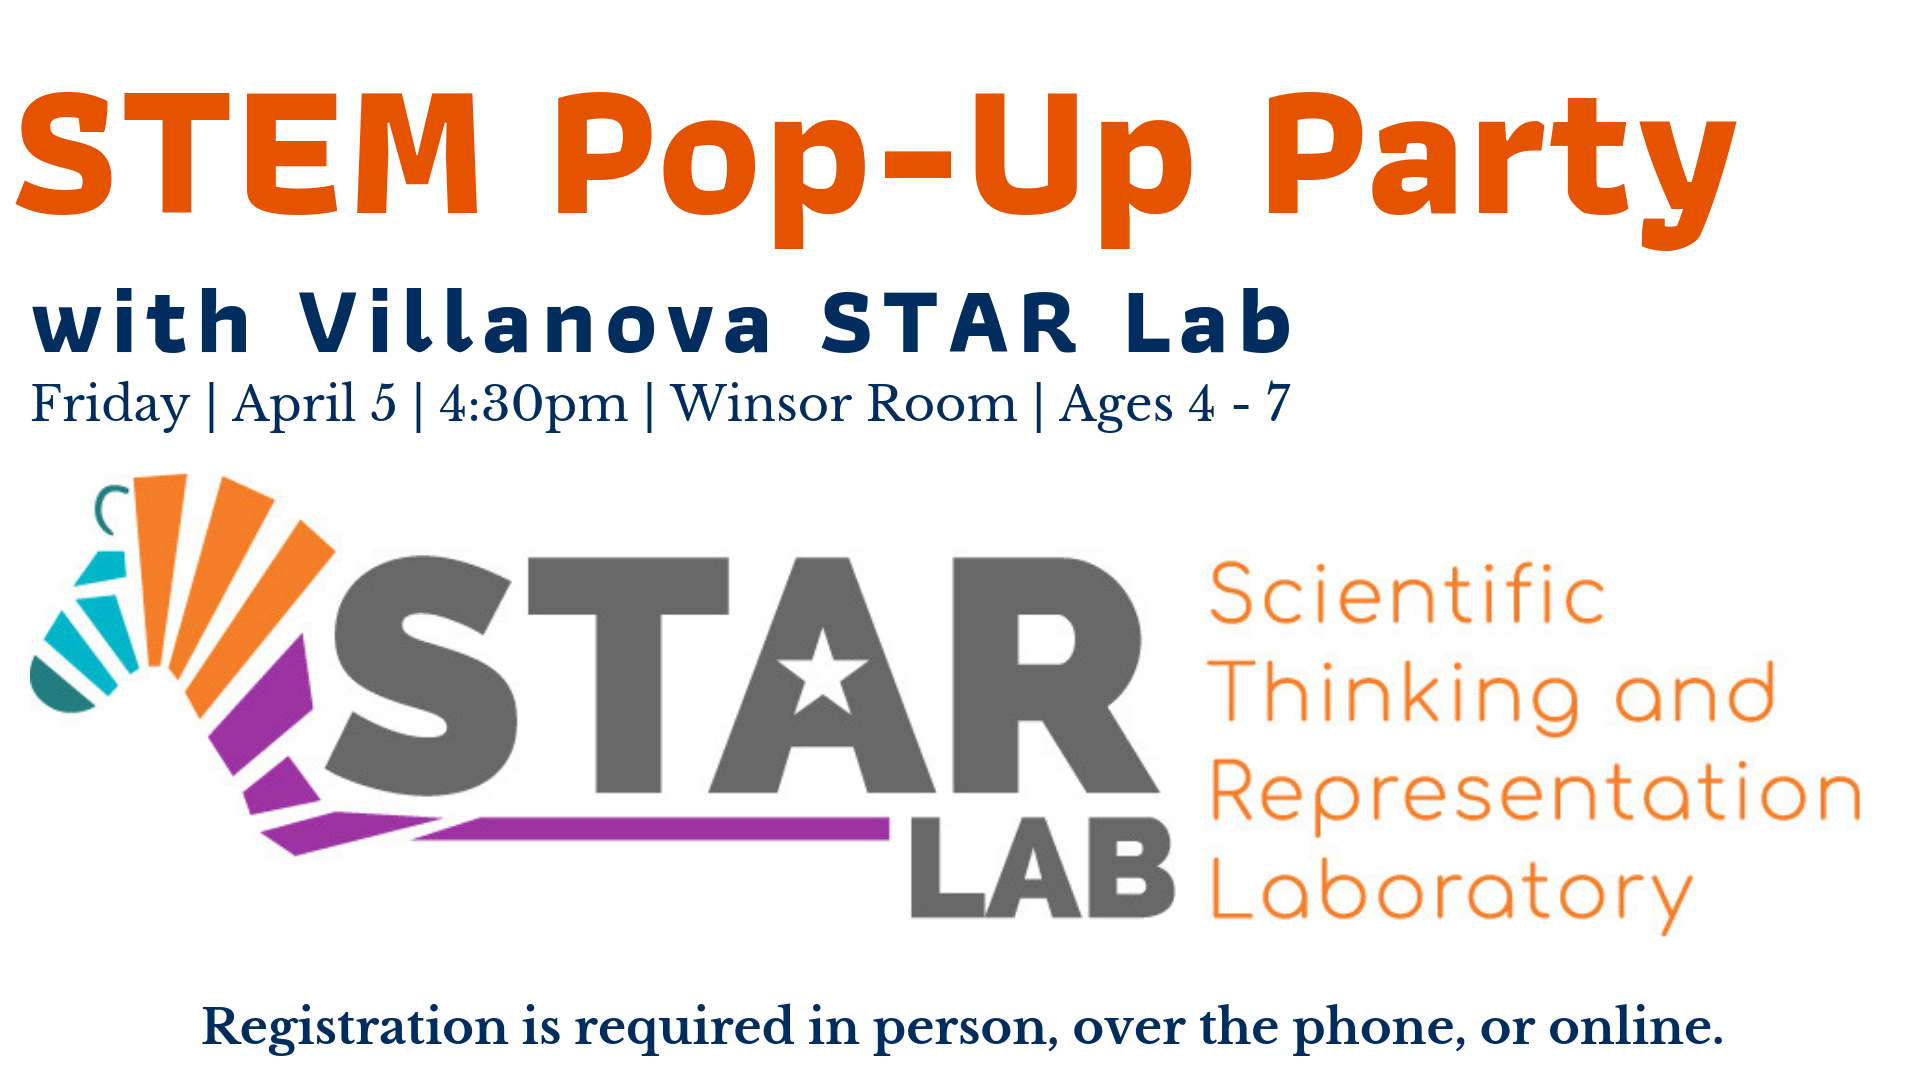 STEM Pop-Up Party with Villanova STAR Lab